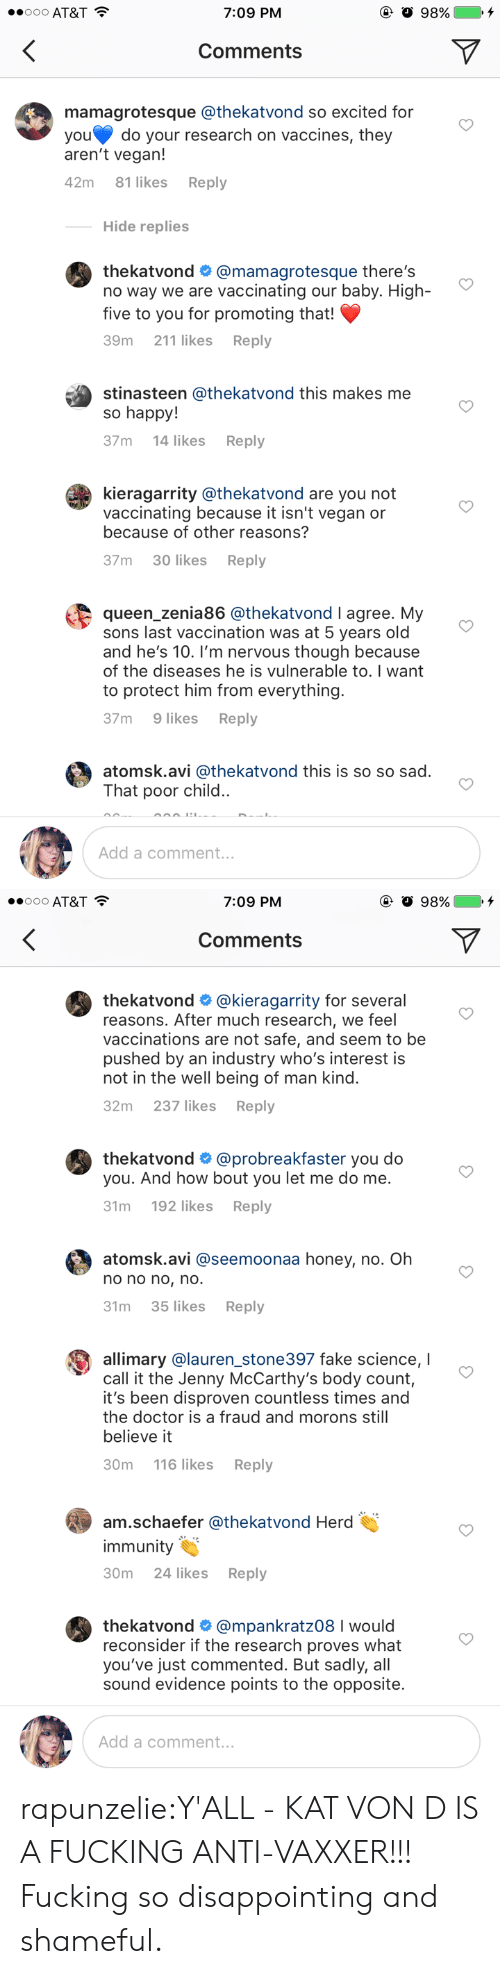 Doctor, Fake, and Fucking: o AT&T  7:09 PM  Comments  mamagrotesque @thekatvond so excited for  you do your research on vaccines, they  aren't vegan!  42m 81 likes Reply  Hide replies  thekatvond # @mamagrotesque there's  no way we are vaccinating our baby. High  five to you for promoting that!  39m 211 likes Reply  stinasteen @thekatvond this makes me  so happy!  37m 14 likes Reply  kieragarrity @thekatvond are you not  vaccinating because it isn't vegan or  because of other reasons?  37m 30 likes Reply  queen_zenia86 @thekatvond I agree. My  sons last vaccination was at 5 years old  and he's 10. I'm nervous though because  of the diseases he is vulnerable to. I want  to protect him from everything  37m 9 likes Reply  atomsk.avi @thekatvond this is so so sad  That poor child..  Add a comment..   7:09 PM  Comments  thekatvond # @k.eragarrity for several  reasons. After much research, we feel  vaccinations are not safe, and seem to be  pushed by an industry who's interest is  not in the well being of man kind.  32m 237 likesReply  thekatvond # @probreakfaster you do  you. And how bout you let me do me  31m 192 likesReply  atomsk.avi @seemoonaa honey, no. Oh  o no no, no  31m 35 likes Reply  allimary olauren stone397 fake science,  call it the Jenny McCarthy's body count,  it's been disproven countless times and  the doctor is a fraud and morons still  believe it  30m 116 likesReply  am.schaefer @thekatvond Herd  immunity  30m 24 likes Reply  thekatvond # @mpankratz08 I would  reconsider if the research proves what  you've just commented. But sadly, al  sound evidence points to the opposite.  Add a comment.. rapunzelie:‪Y'ALL - KAT VON D IS A FUCKING ANTI-VAXXER!!! Fucking so disappointing and shameful.‬